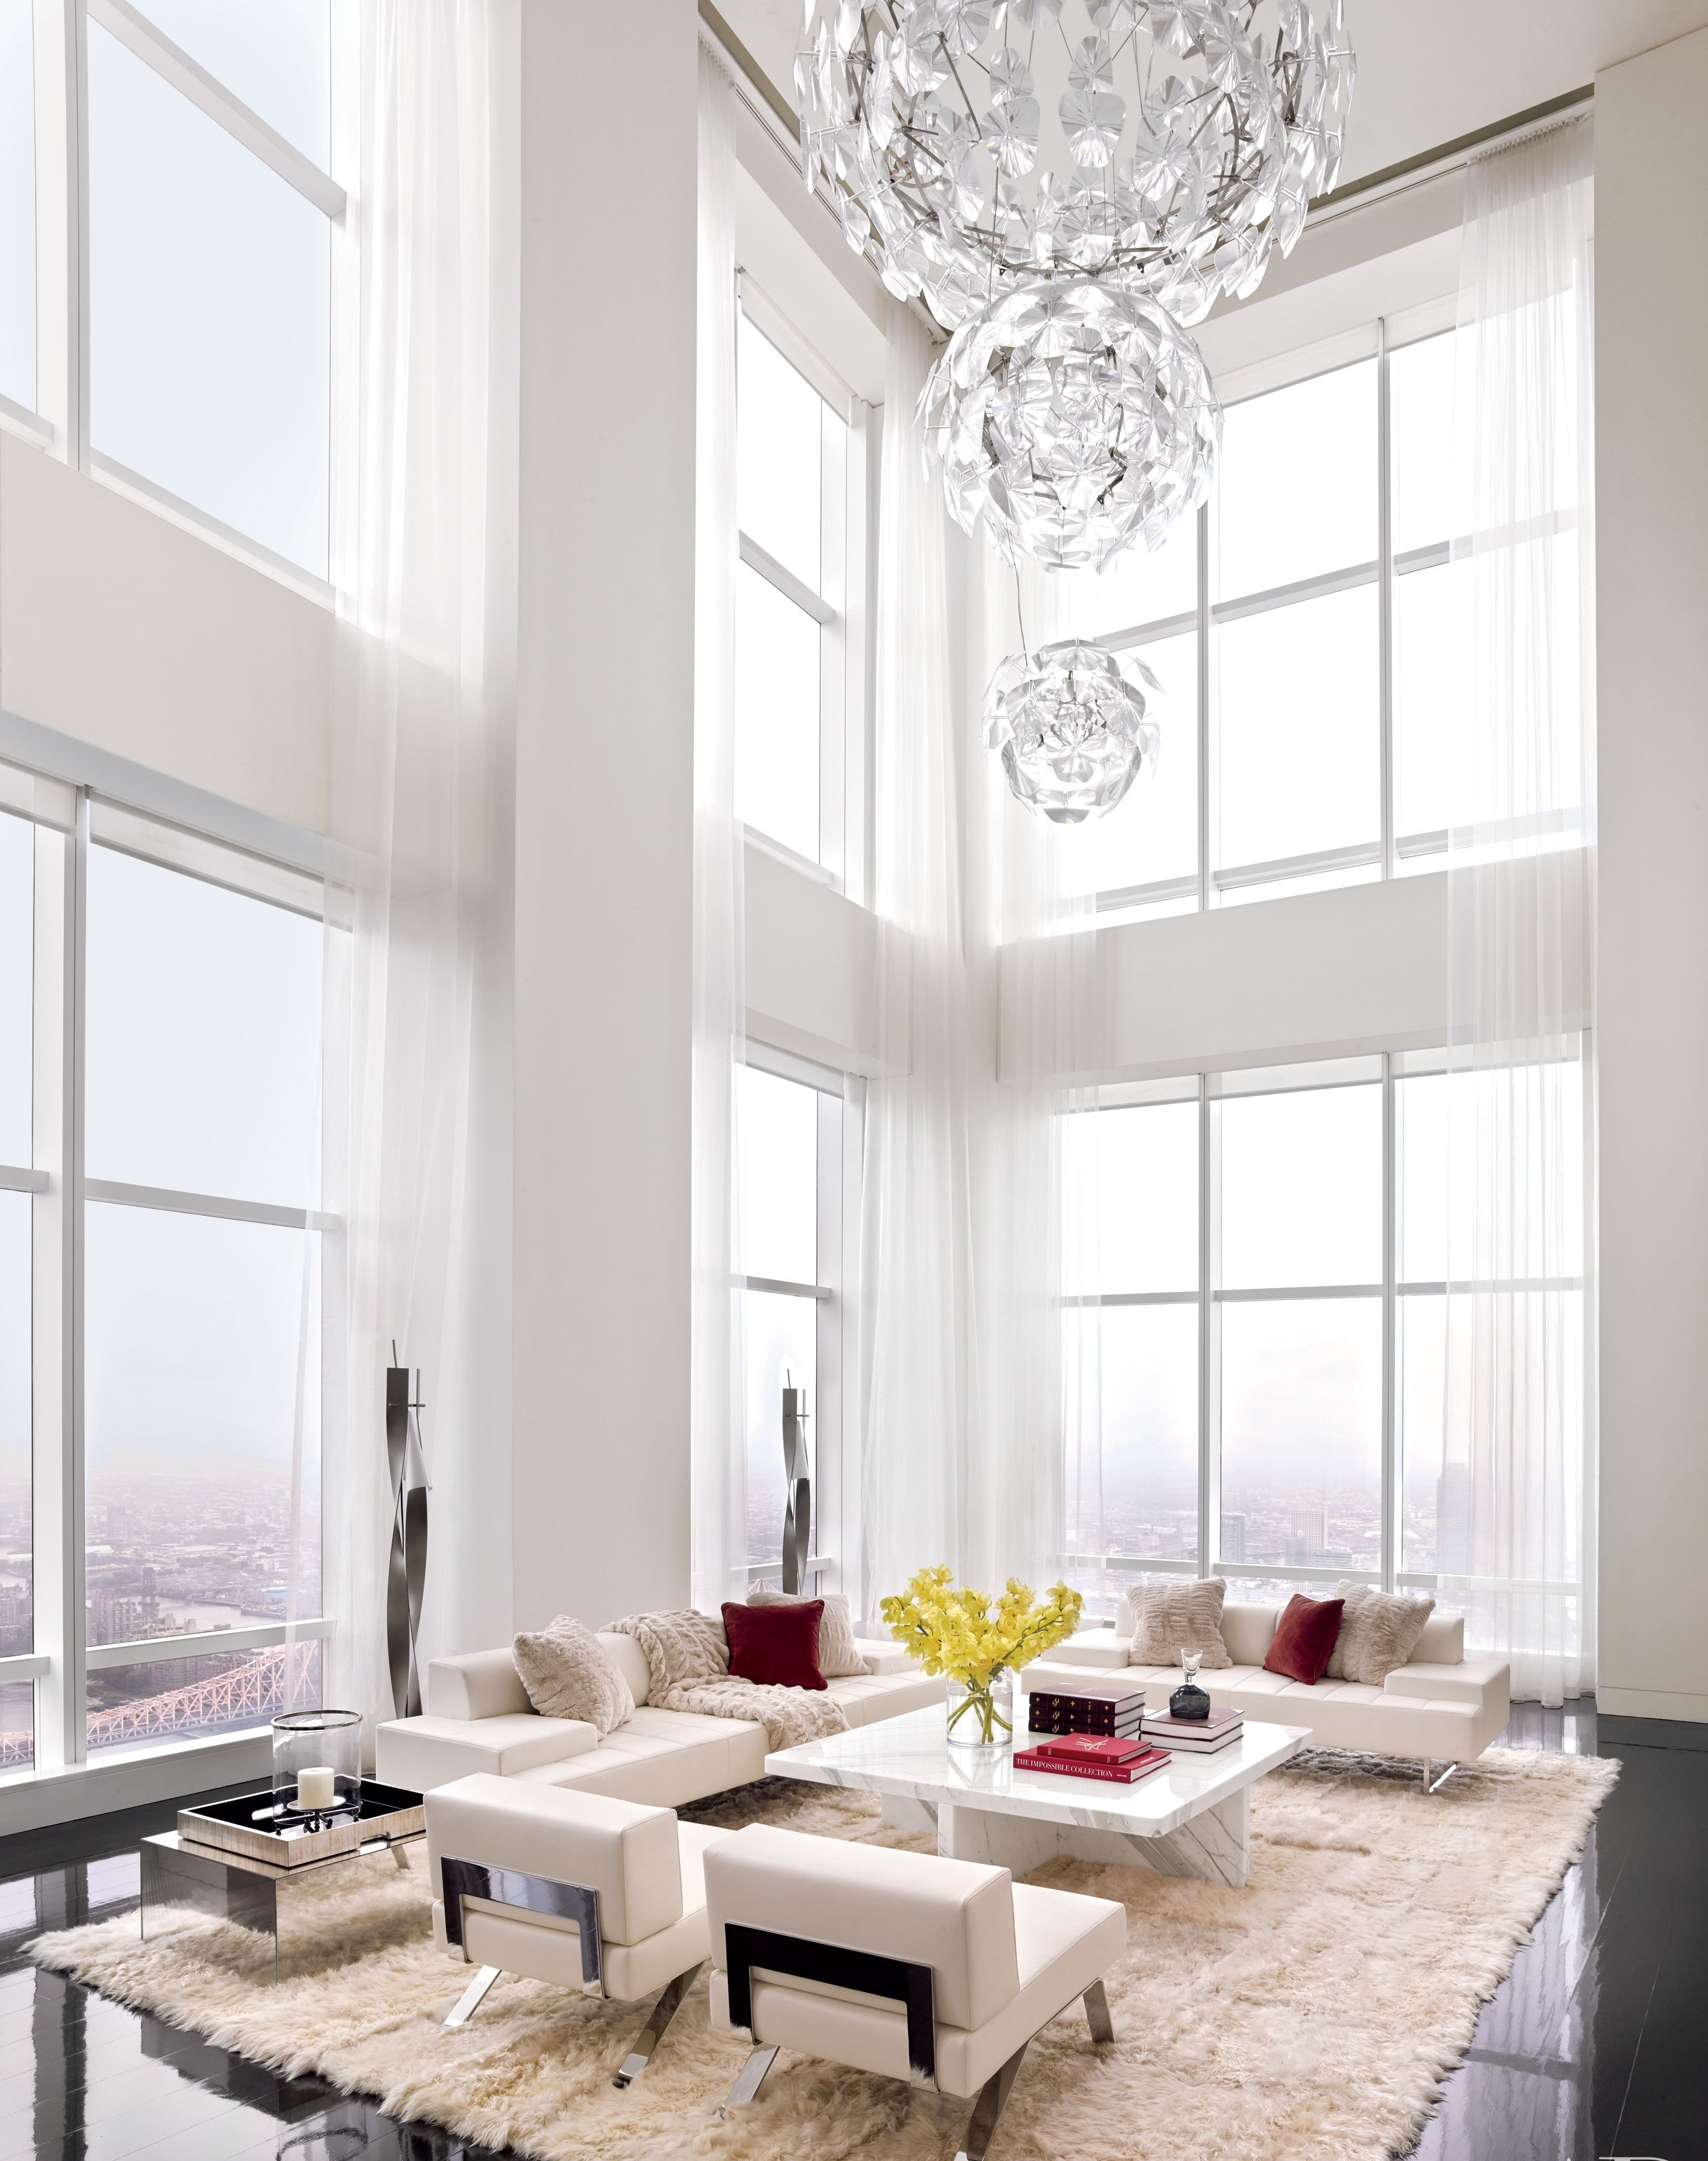 All white living room design ideas White living room ideas photos